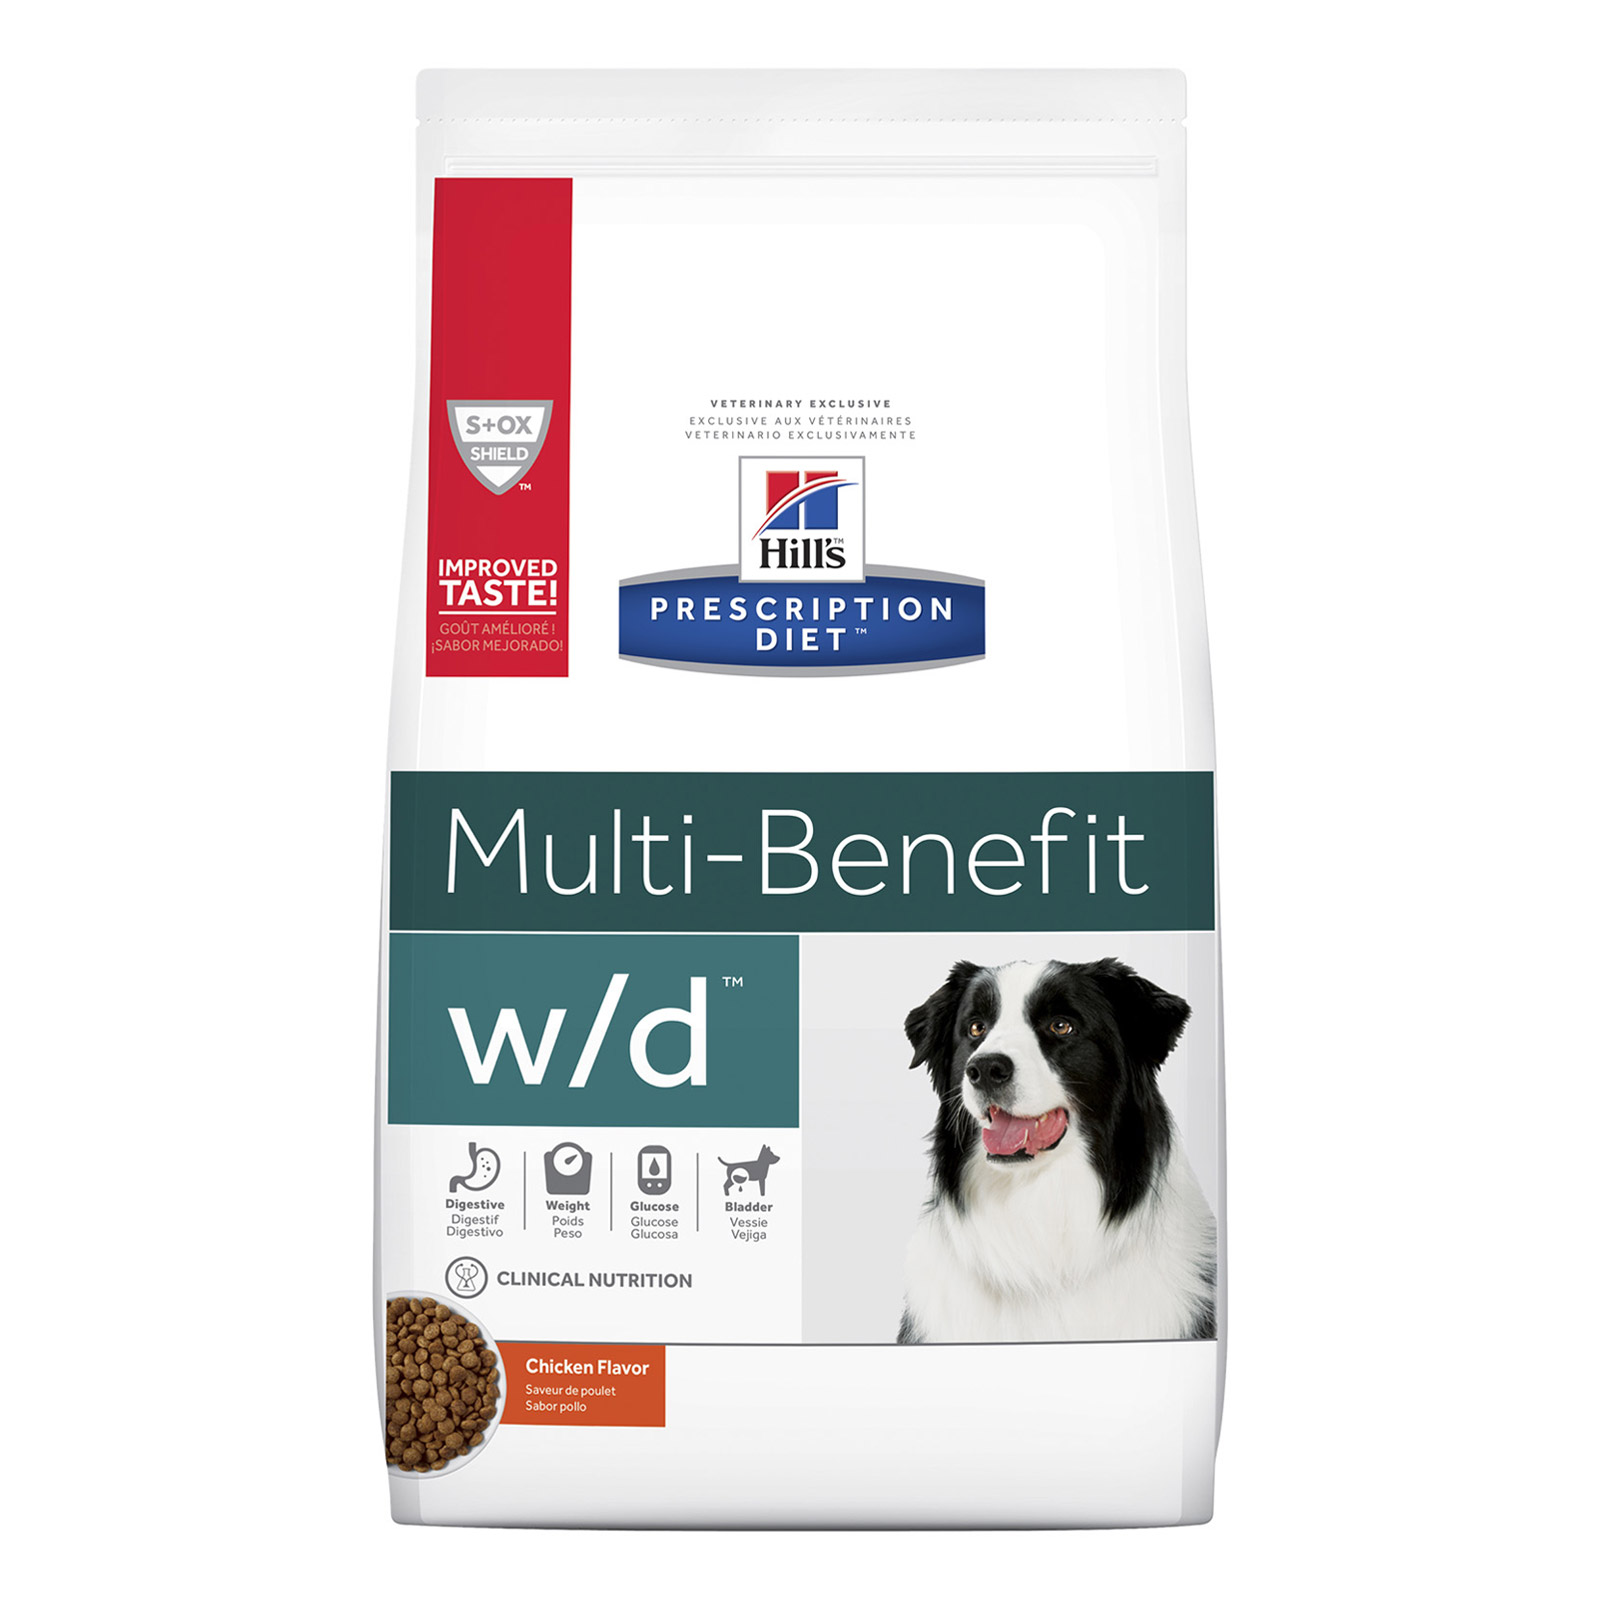 Hill's Prescription Diet w/d Digestive/Weight/Glucose Management with Chicken Dry Dog Food